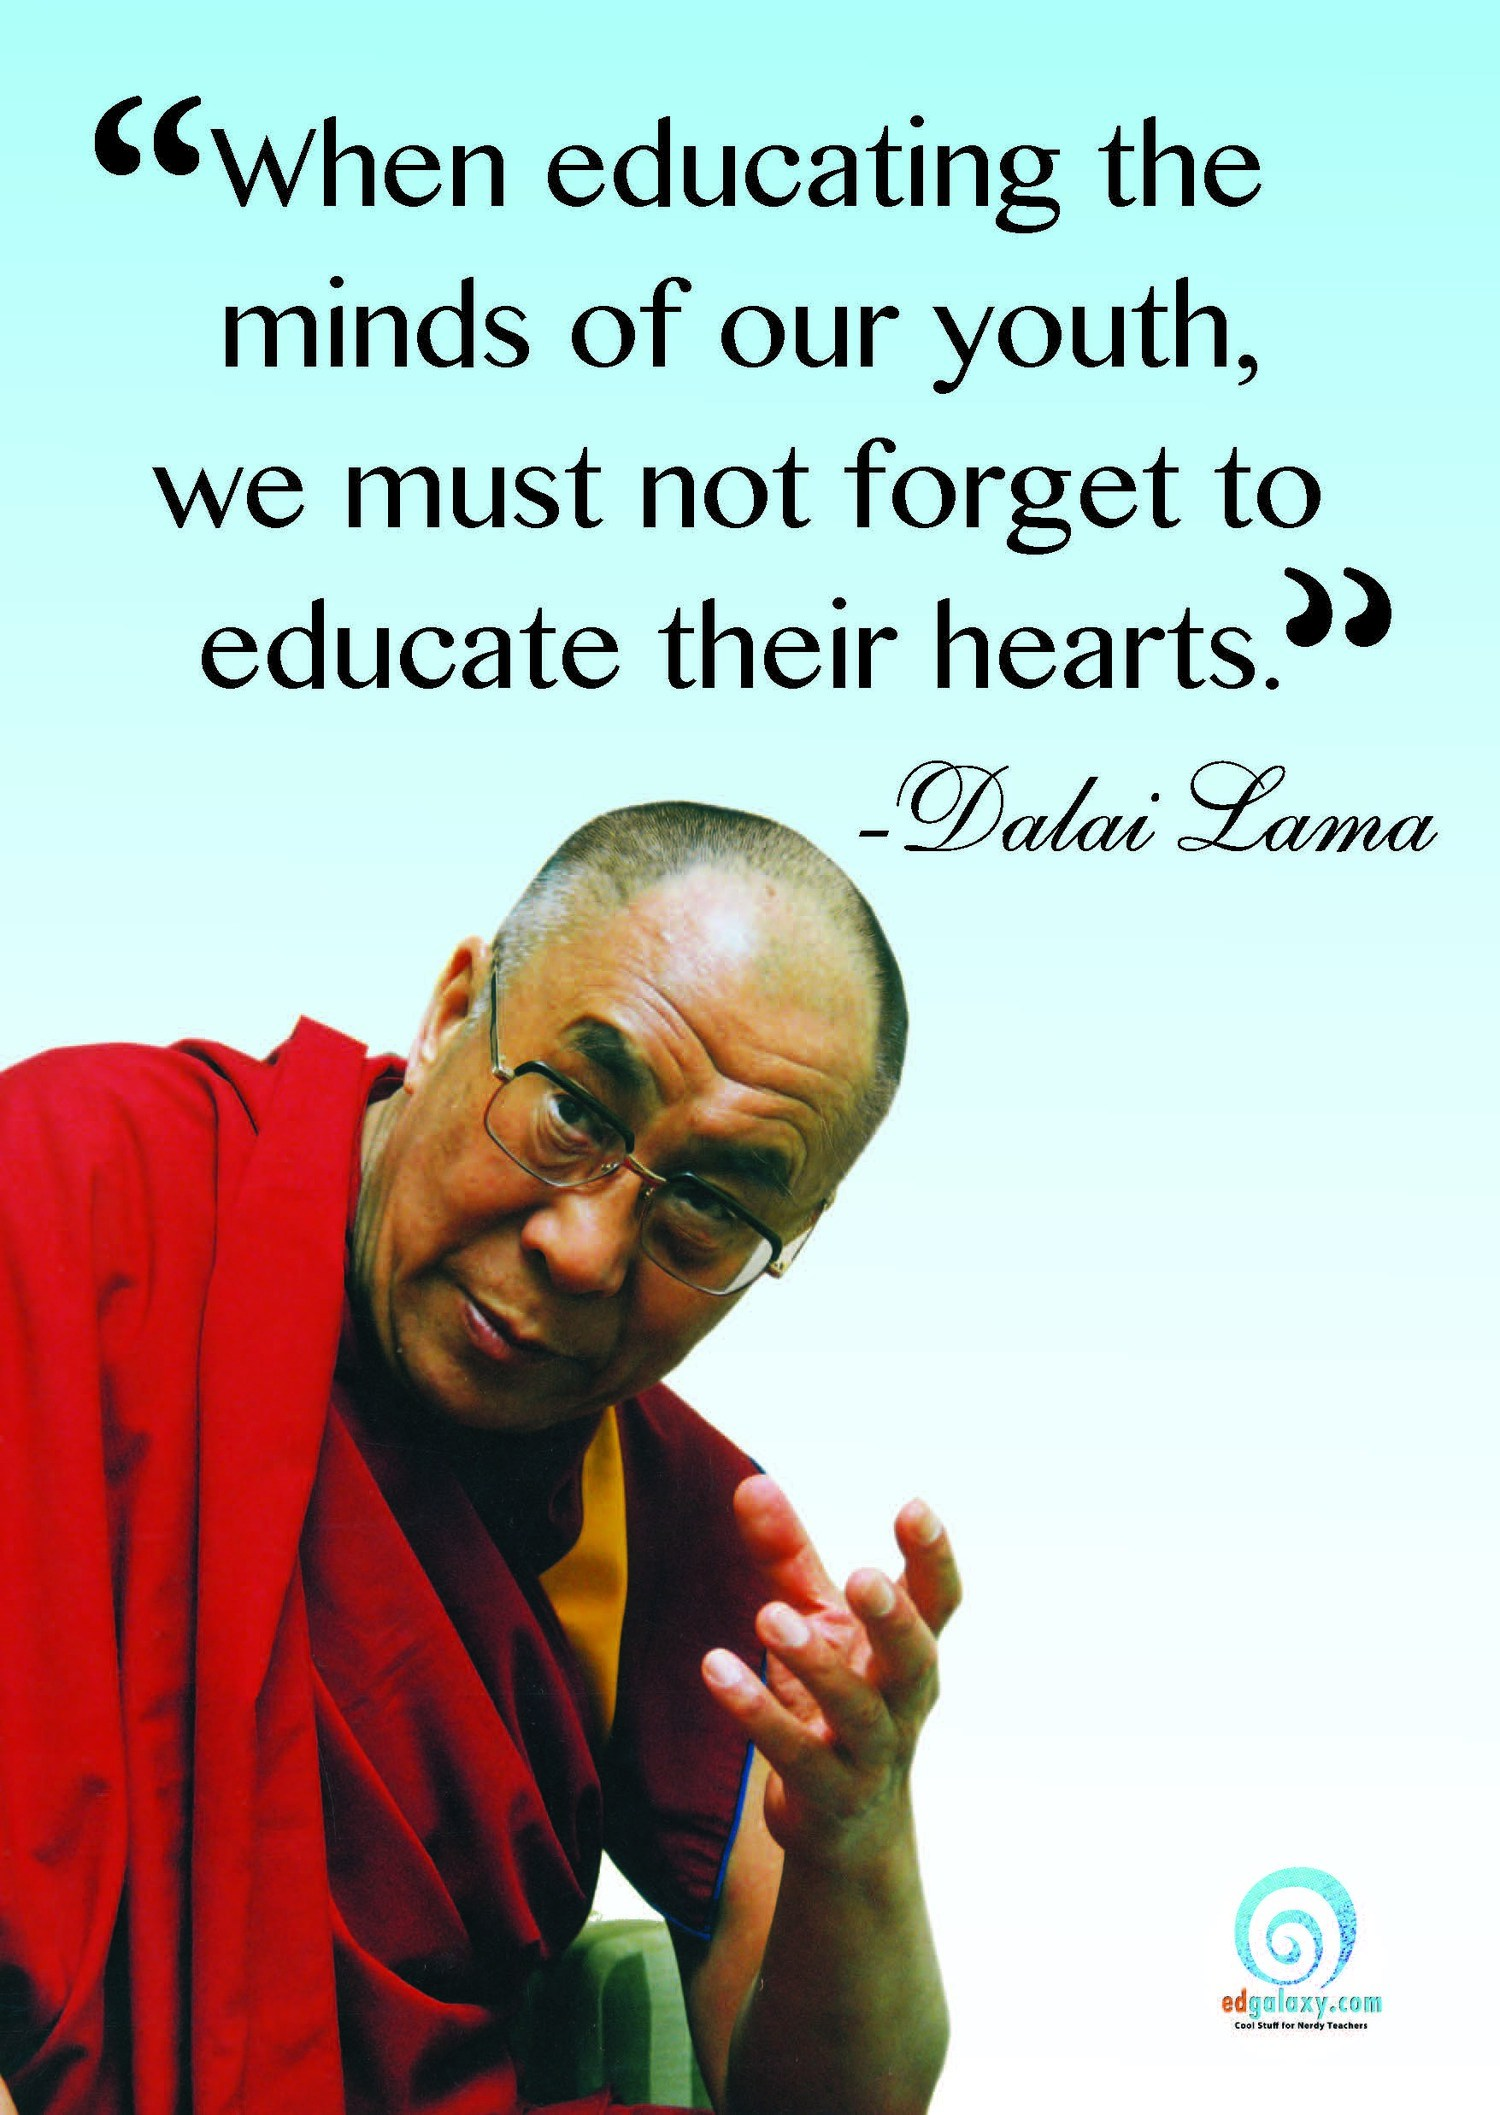 Dalai Lama quote: When educating the minds of our youth, we must not forget to educate their hearts.